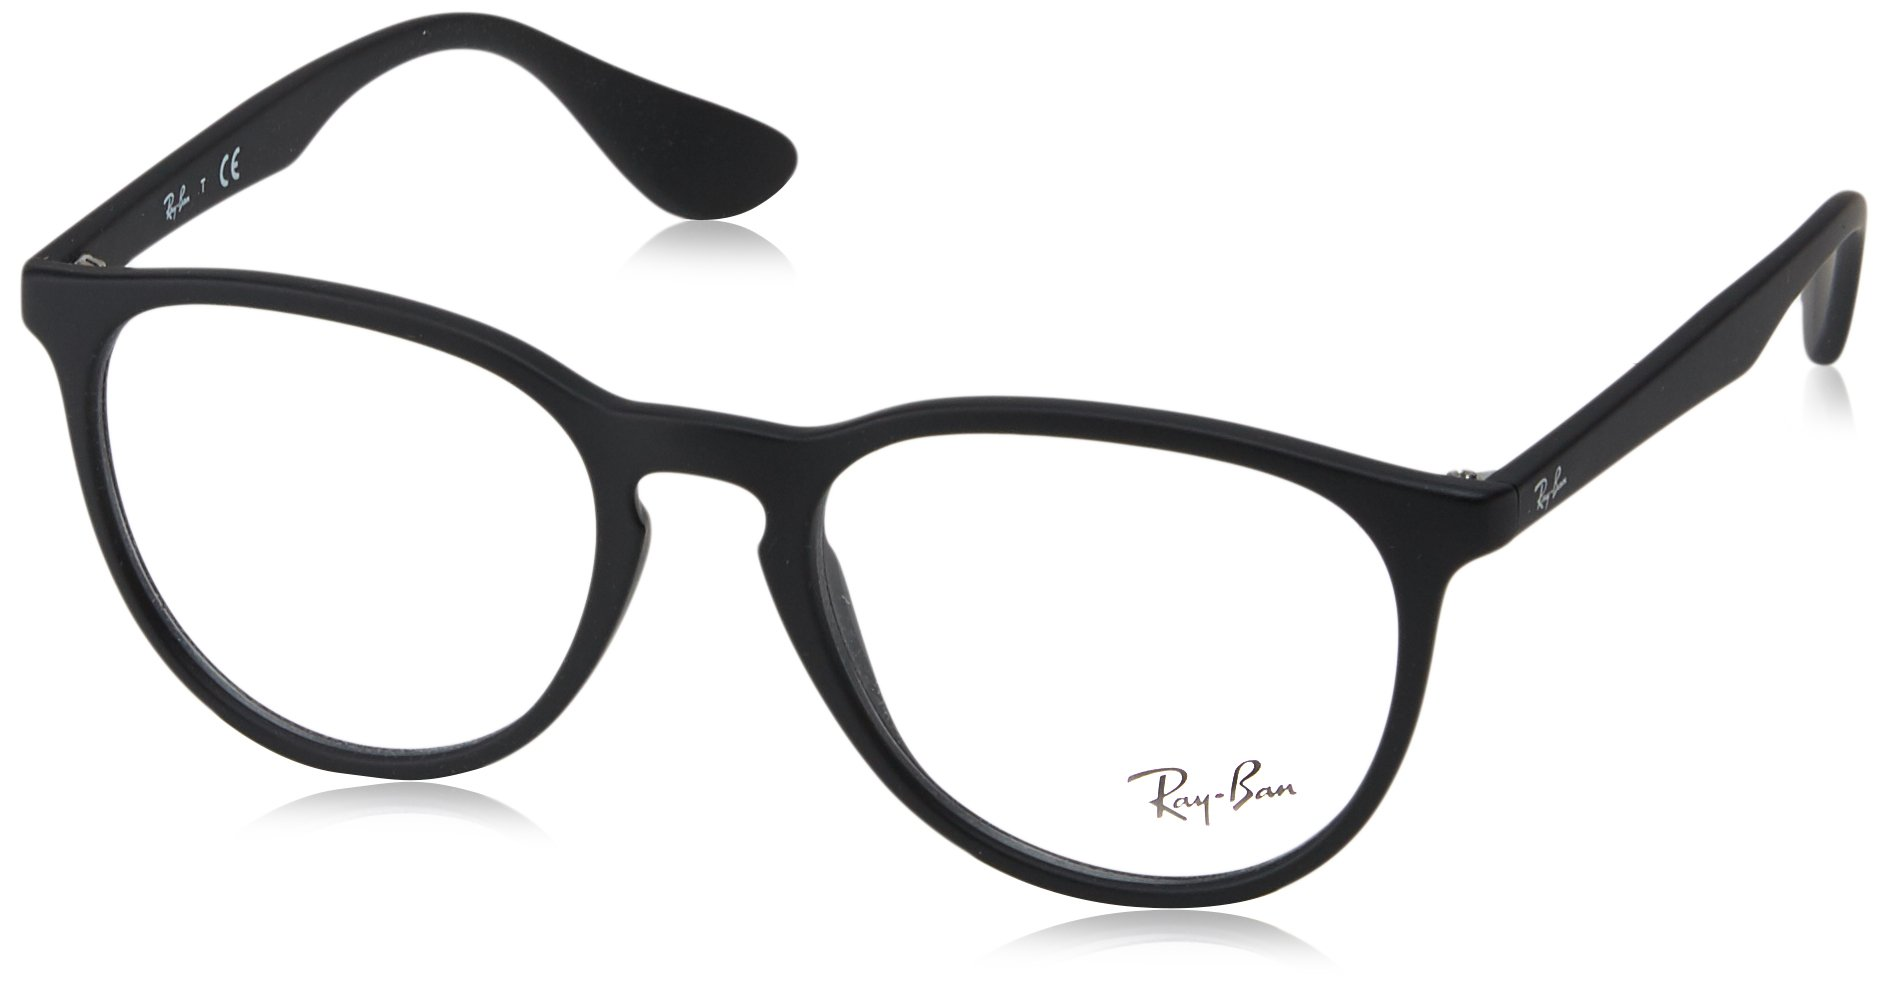 RAY-BAN RX7046 Rectangular Eyeglass Frames, Rubber Black/Demo Lens, 51 mm by Ray-Ban